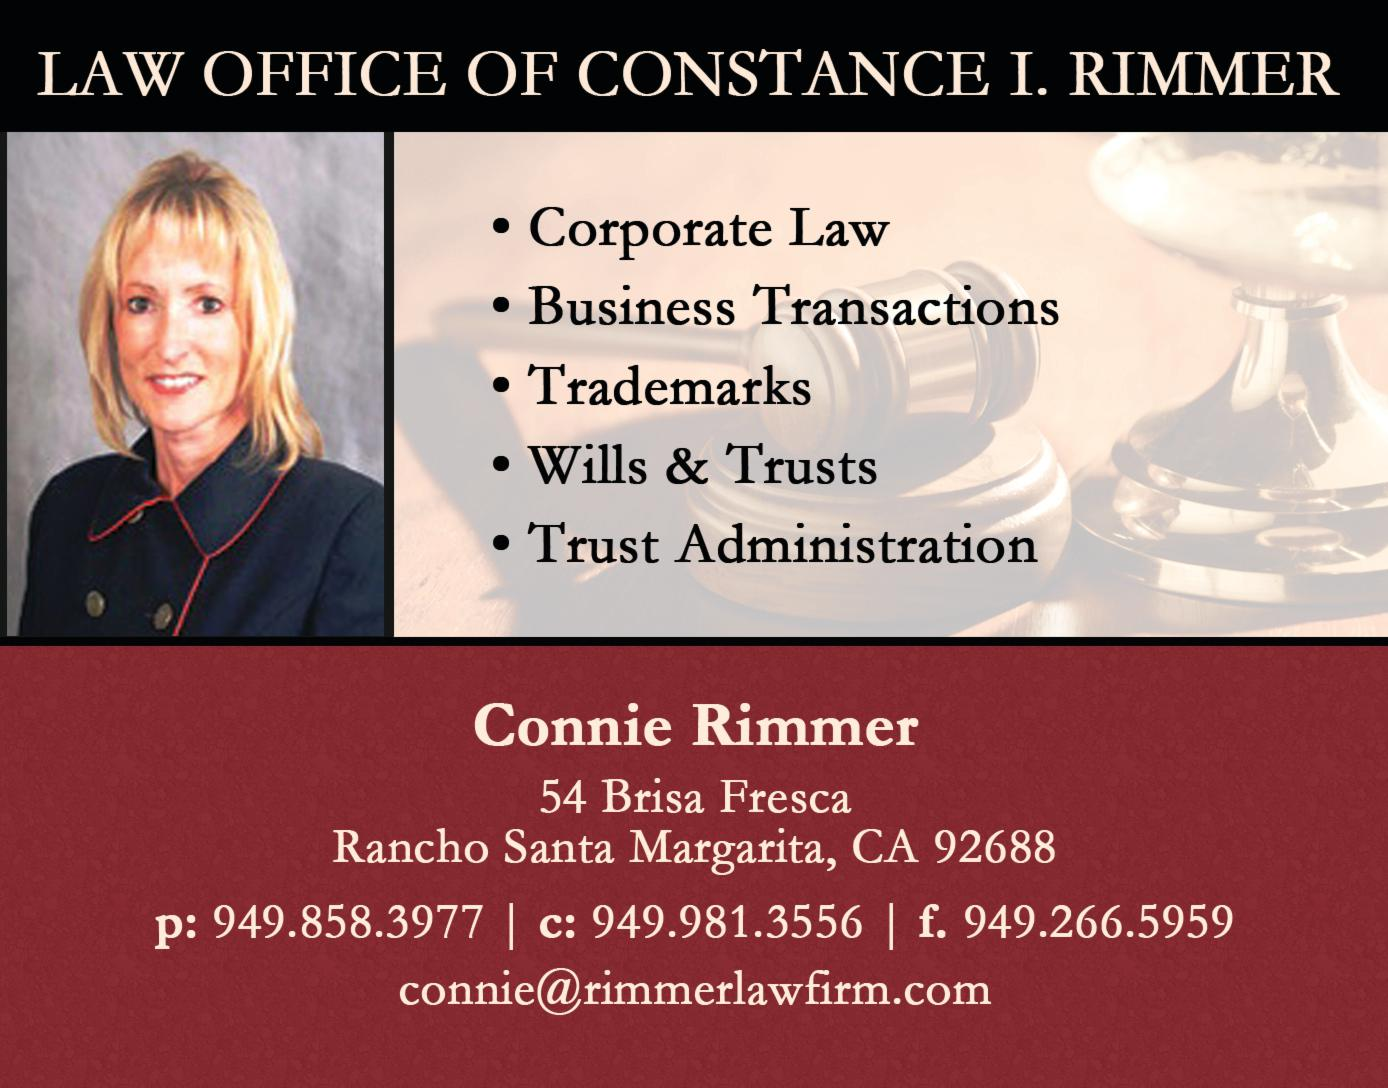 Law Office of Constance I. Rimmer, Esq